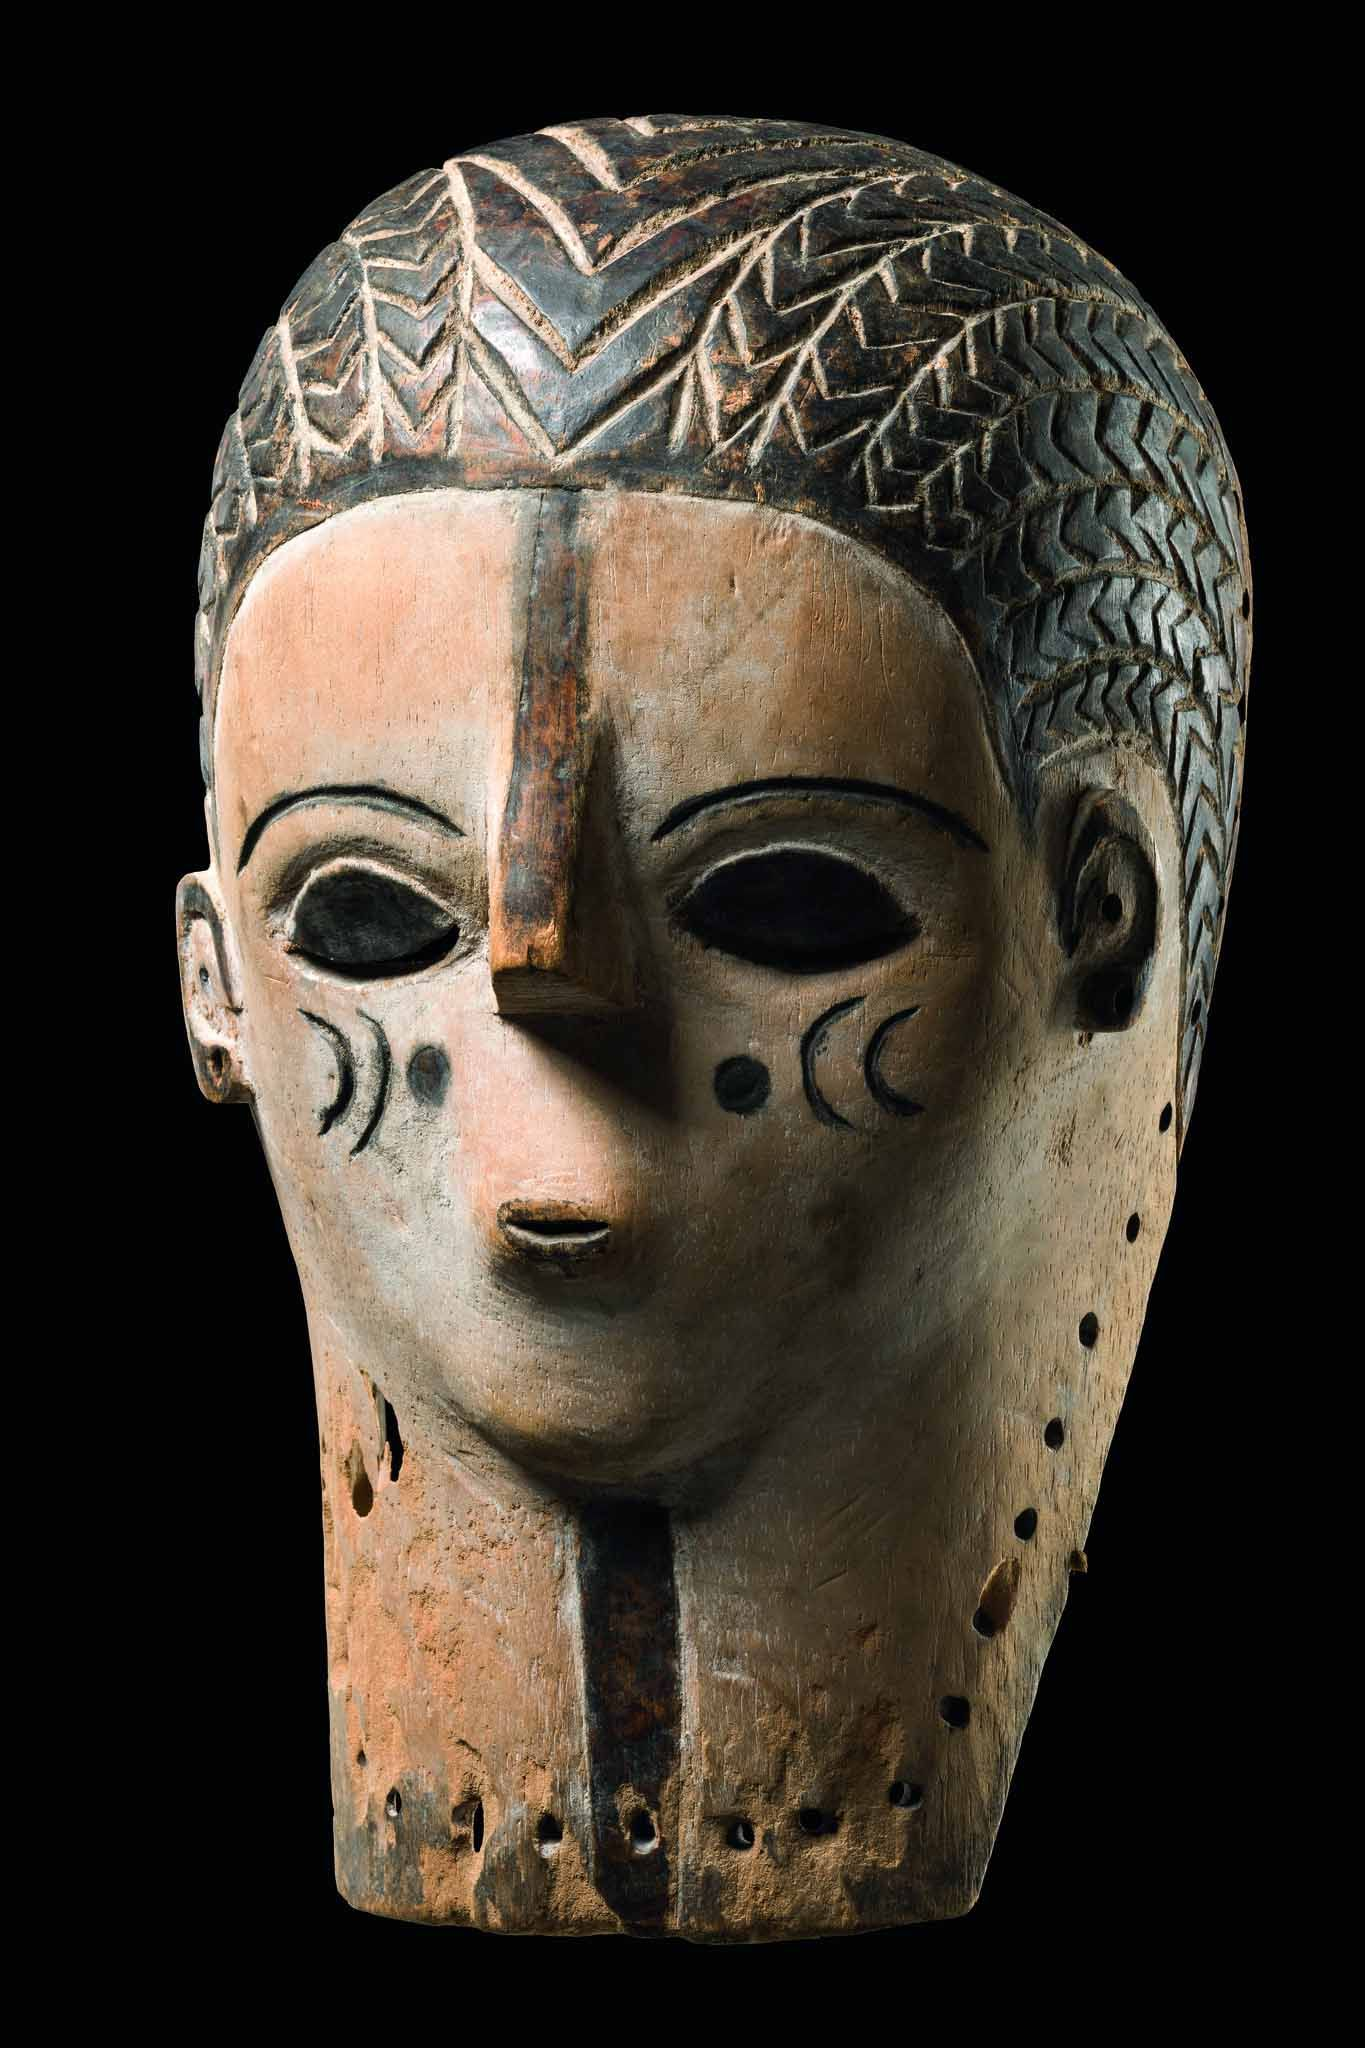 Africa | Female mask from the Songye or Zela people of DR Congo | Light wood, whitened with kaolin and black pigment accents